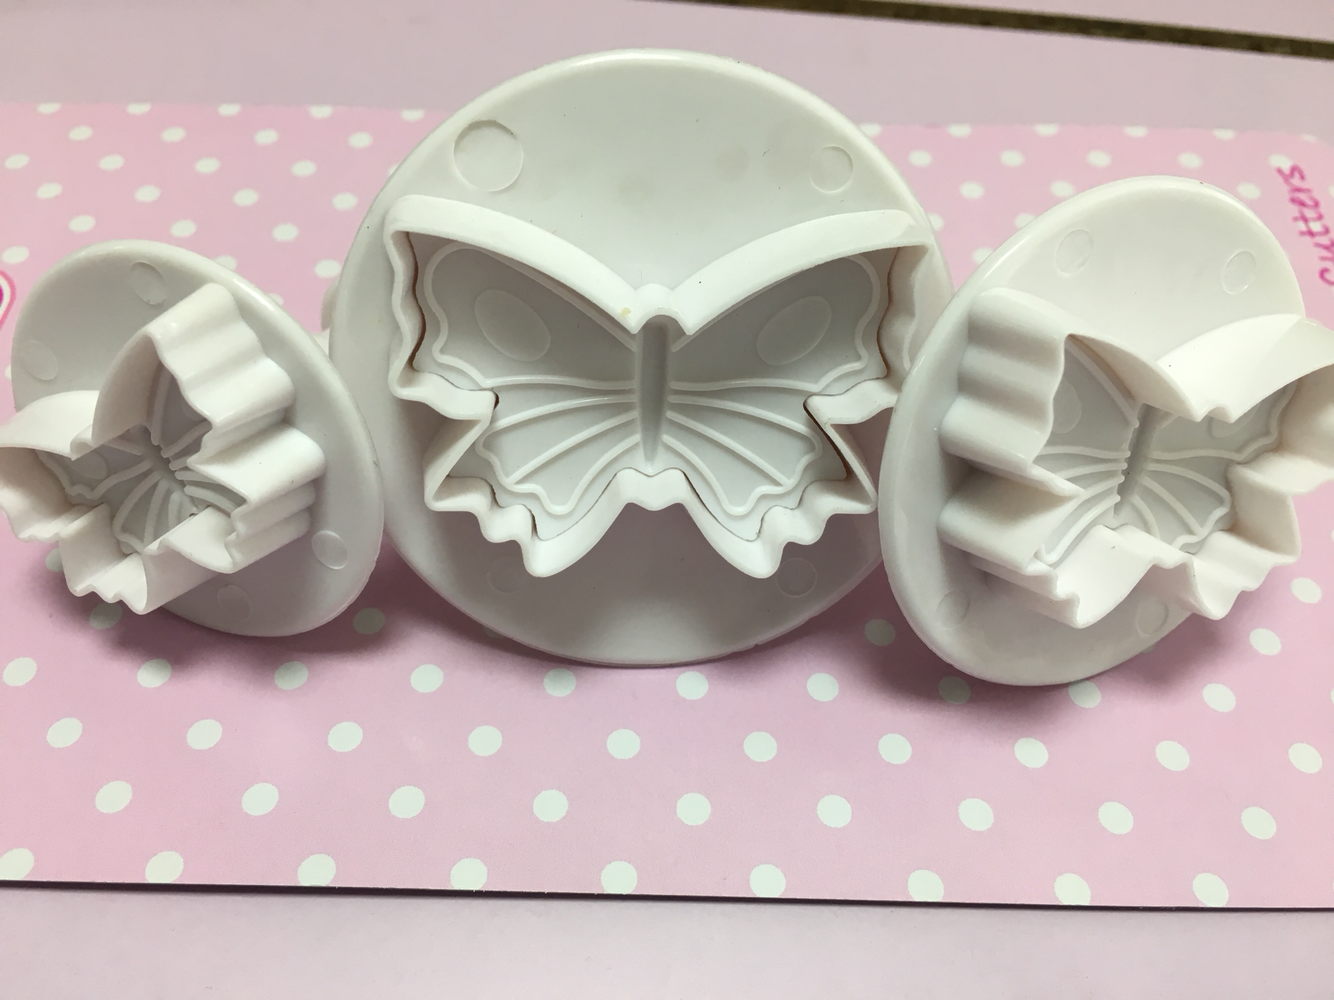 Cake Star Plunger Cutters -Butterfly -Set of 3 -Kουπάντ Πεταλούδες με Eκβολέα -3 Τεμ.